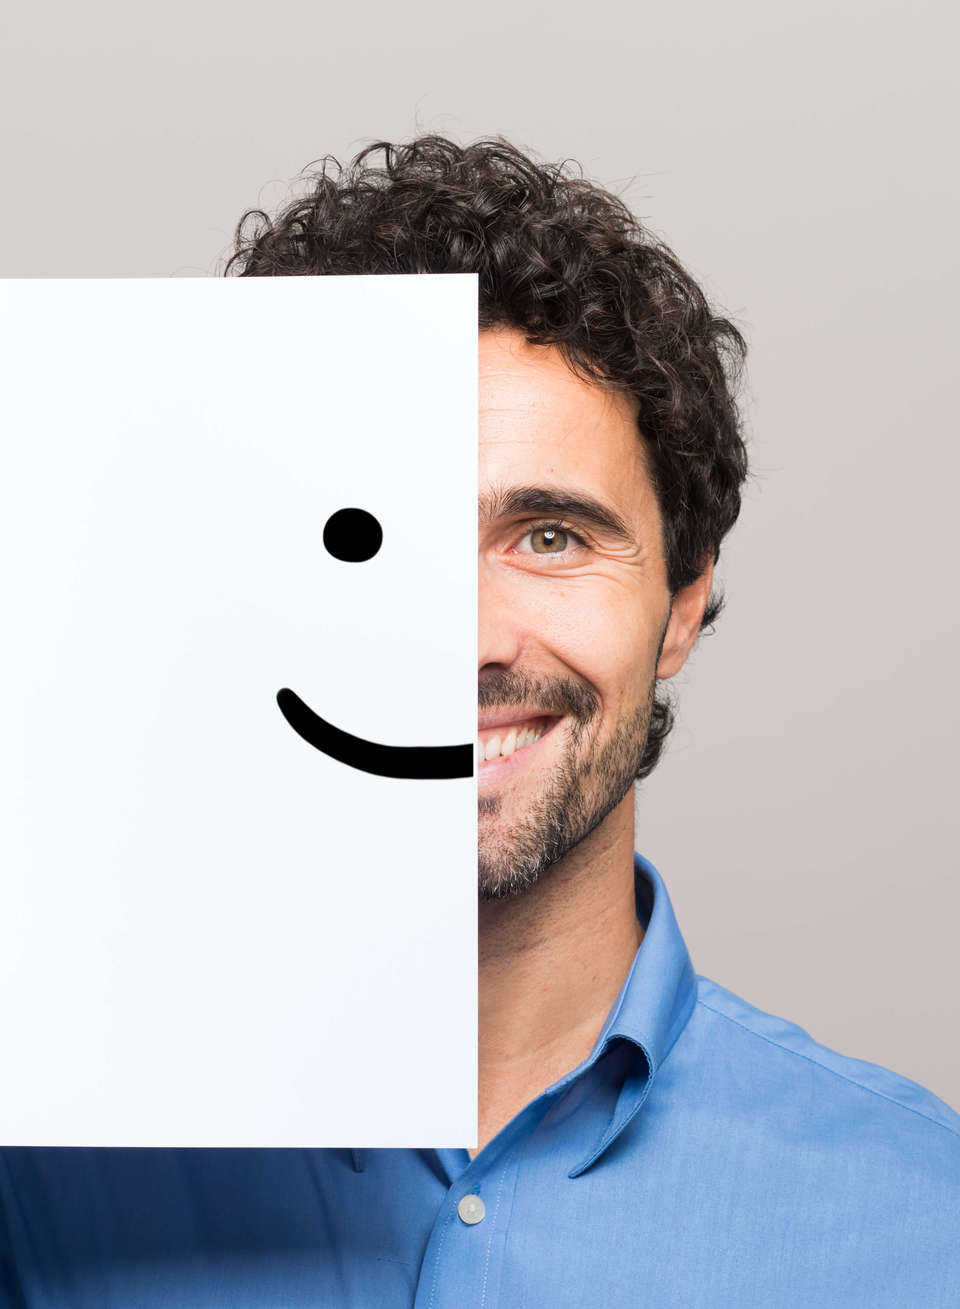 Cracking the formula to employee happiness